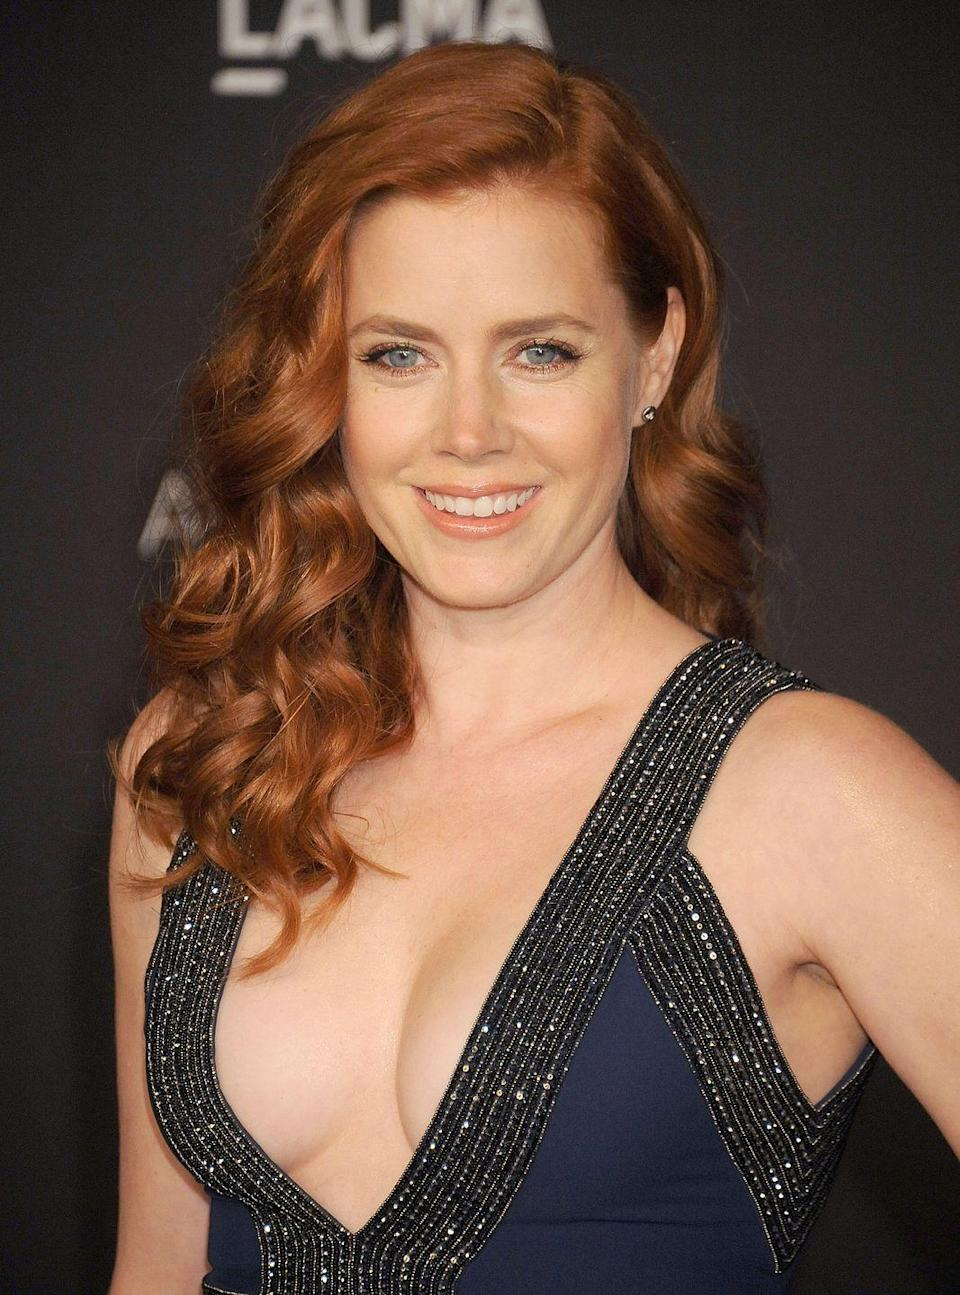 "<p>Before she was being nominated for awards, Amy Adams was one of the many celebrities who got their start as Hooters girls. ""It was a great job out of high school,"" she told <em>Entertainment Tonight</em>, <em><a href=""https://www.dailymail.co.uk/tvshowbiz/article-2907062/Amy-Adams-reveals-used-curves-Hooters-waitress.html"" rel=""nofollow noopener"" target=""_blank"" data-ylk=""slk:The Daily Mail"" class=""link rapid-noclick-resp"">The Daily Mail</a></em> reports. ""I was a hostess at first and then I waited tables for a while and it was a great way to earn money for a car.""</p>"